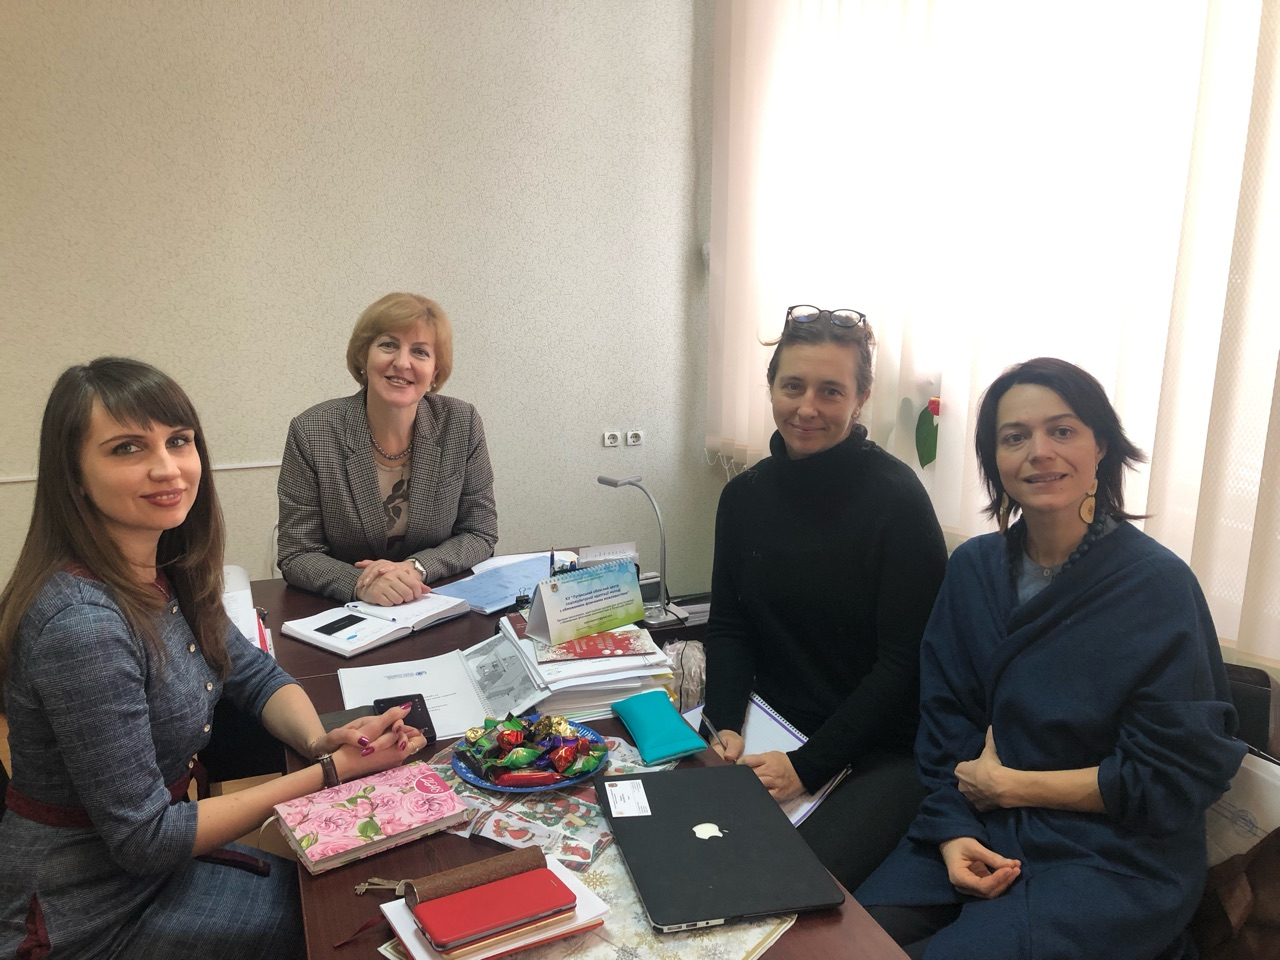 Evaluation of UNFPA psychosocial support to survivors of gender-based violence in Eastern Ukraine